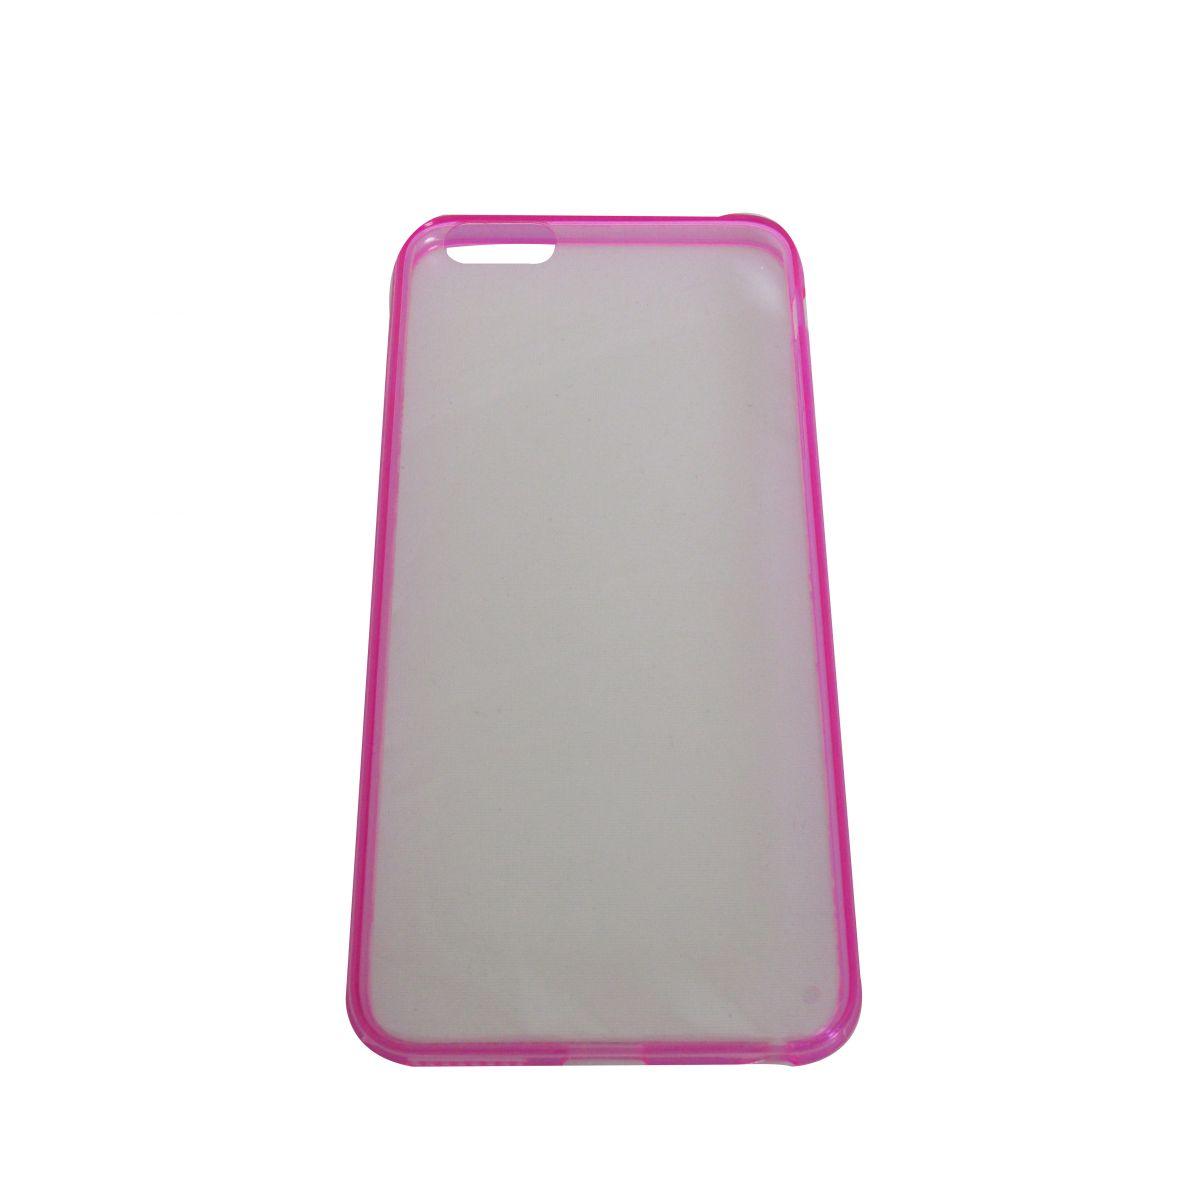 Capa Bumper Exclusiva Iphone 6 Plus Roxa